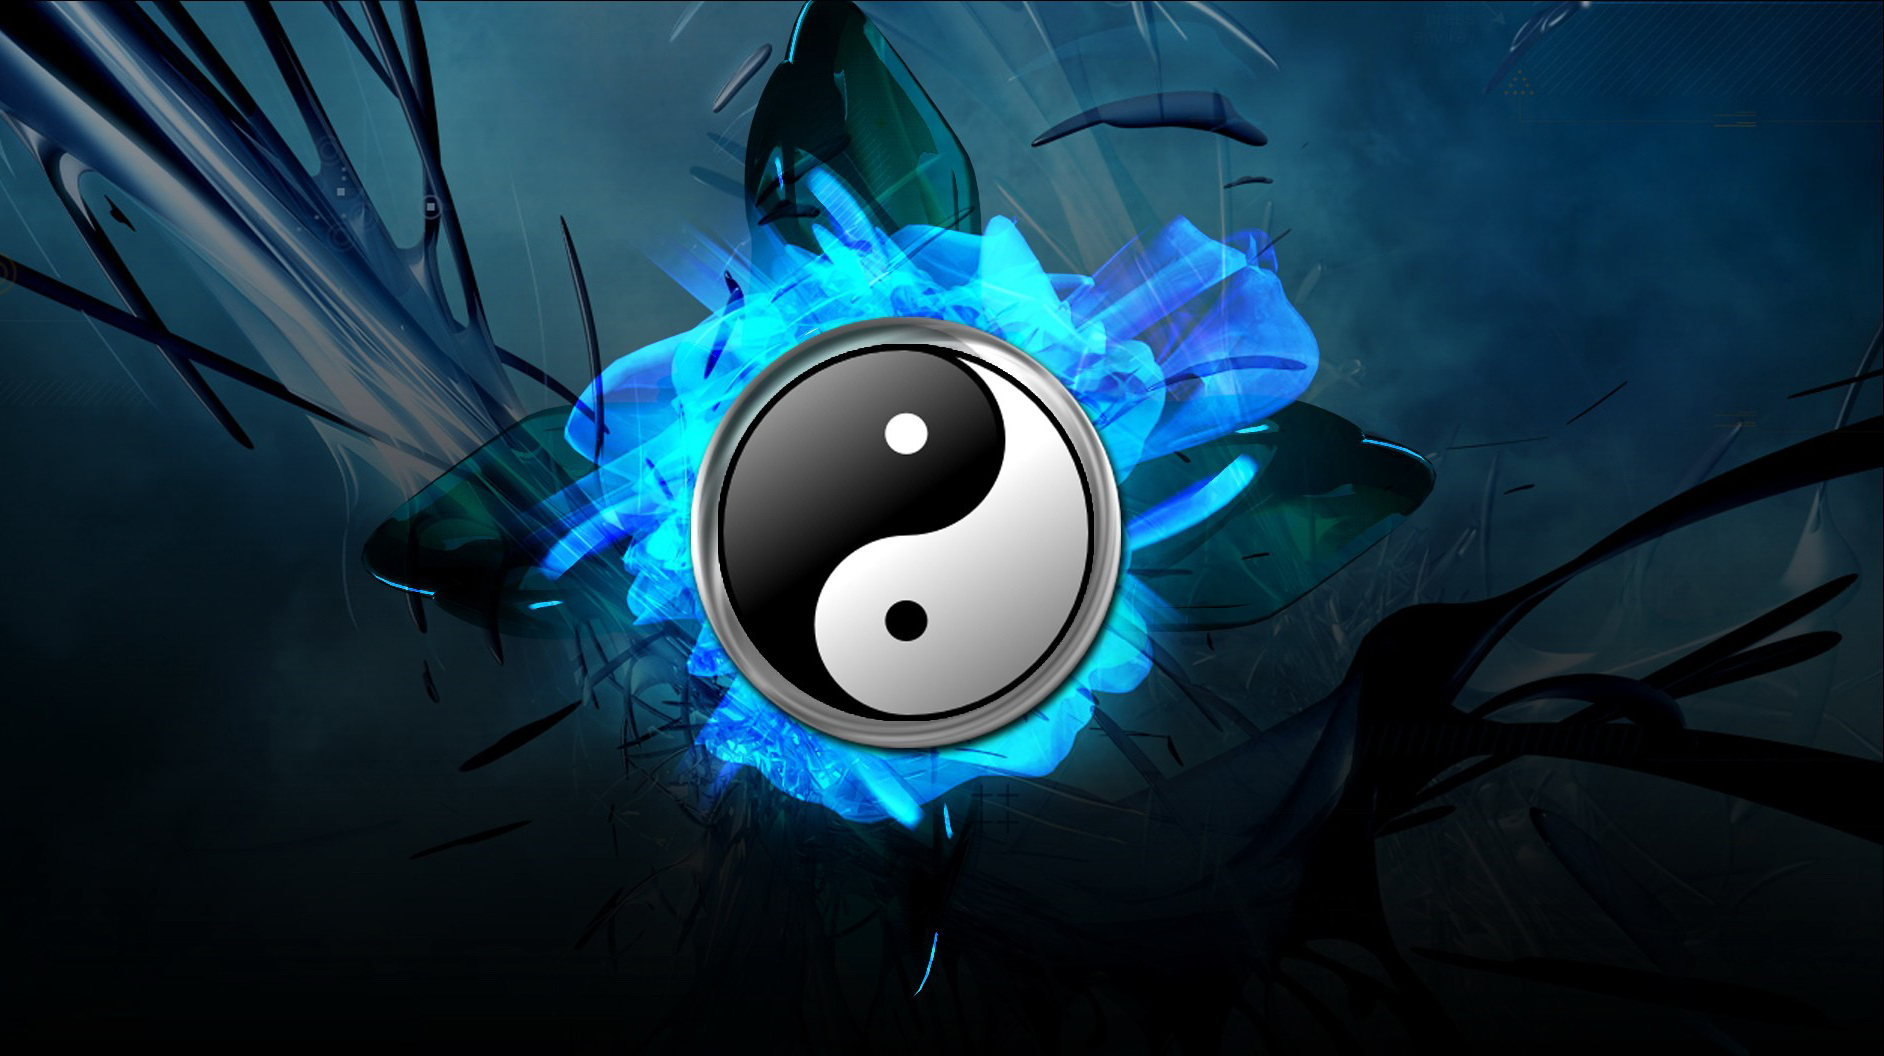 yin and yang wallpaper iphone